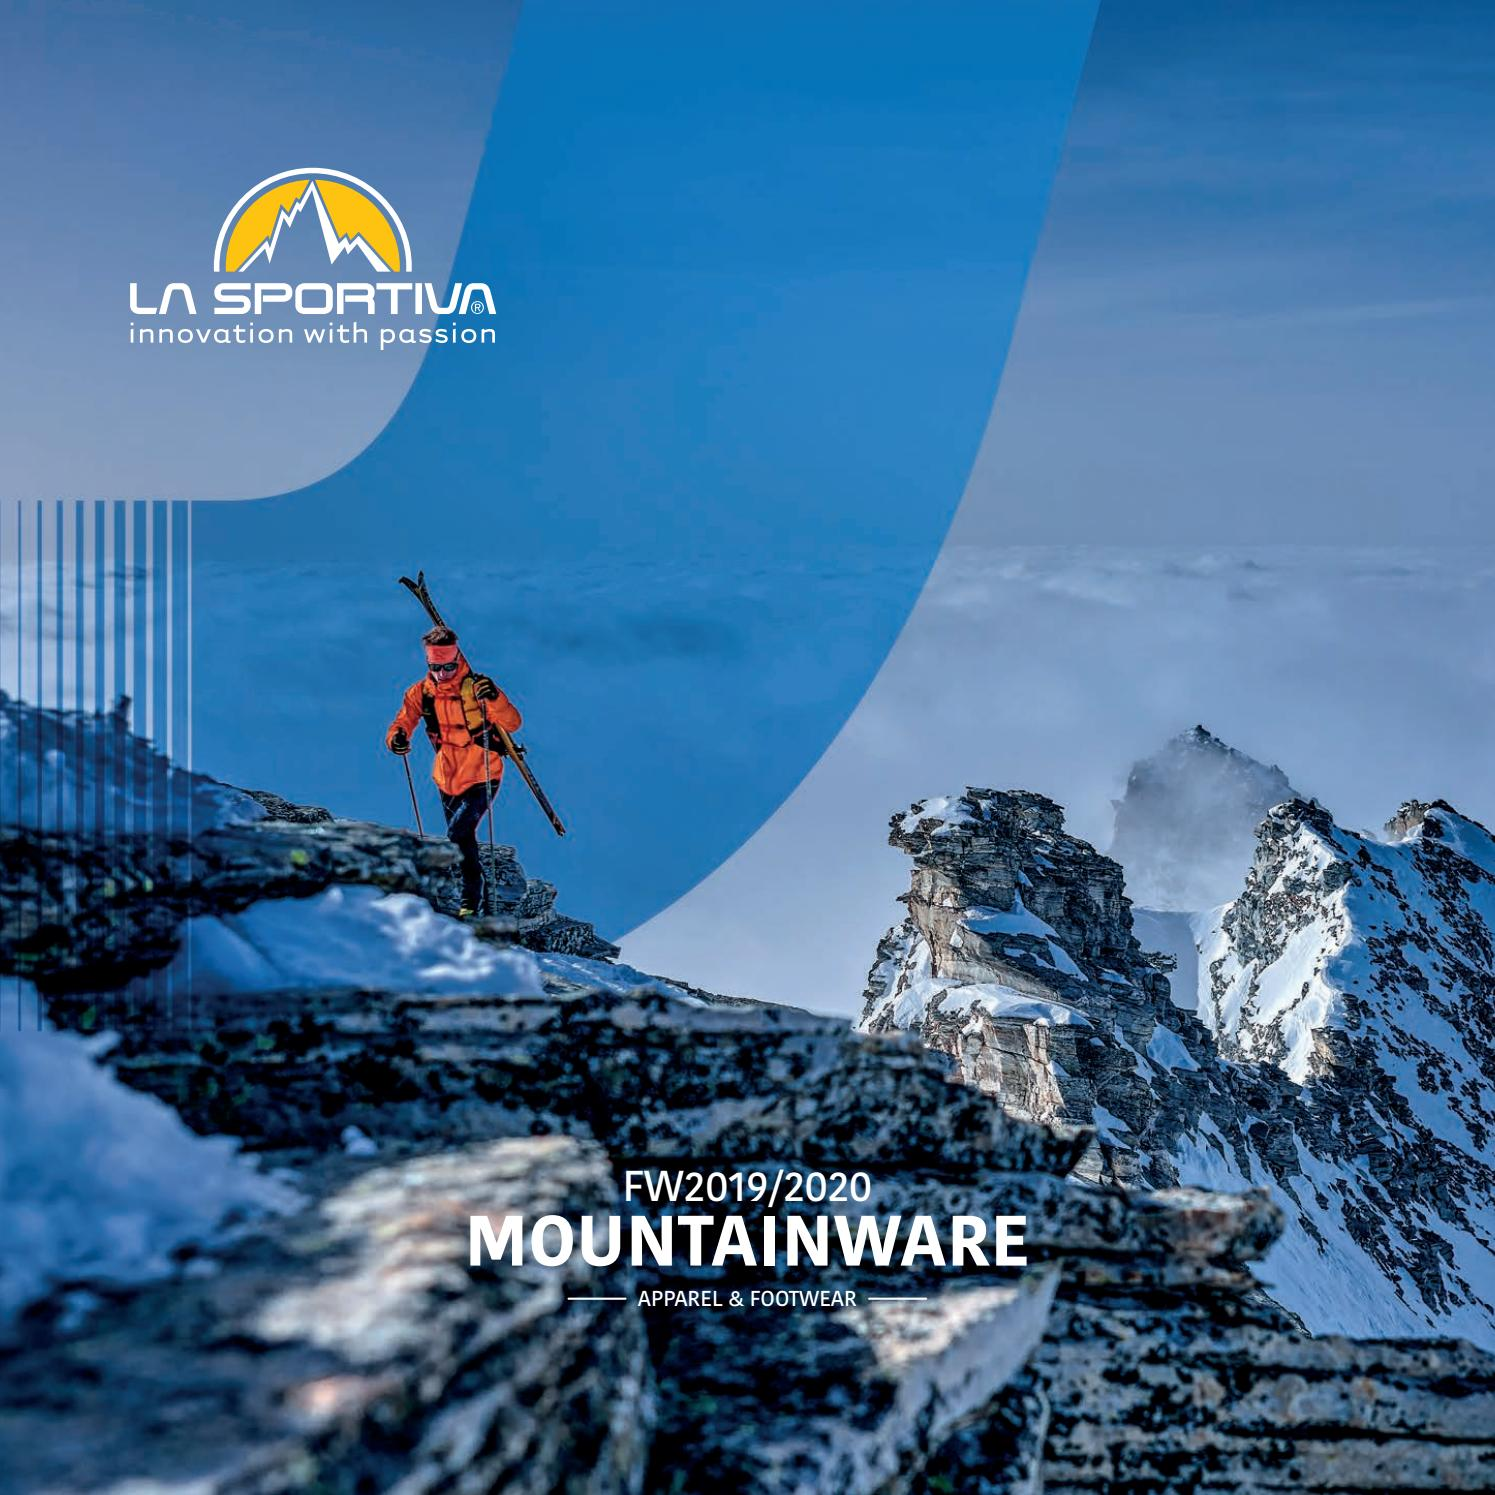 La Sportiva Catalogue FW 2019 20 by MountainBlogIT - issuu